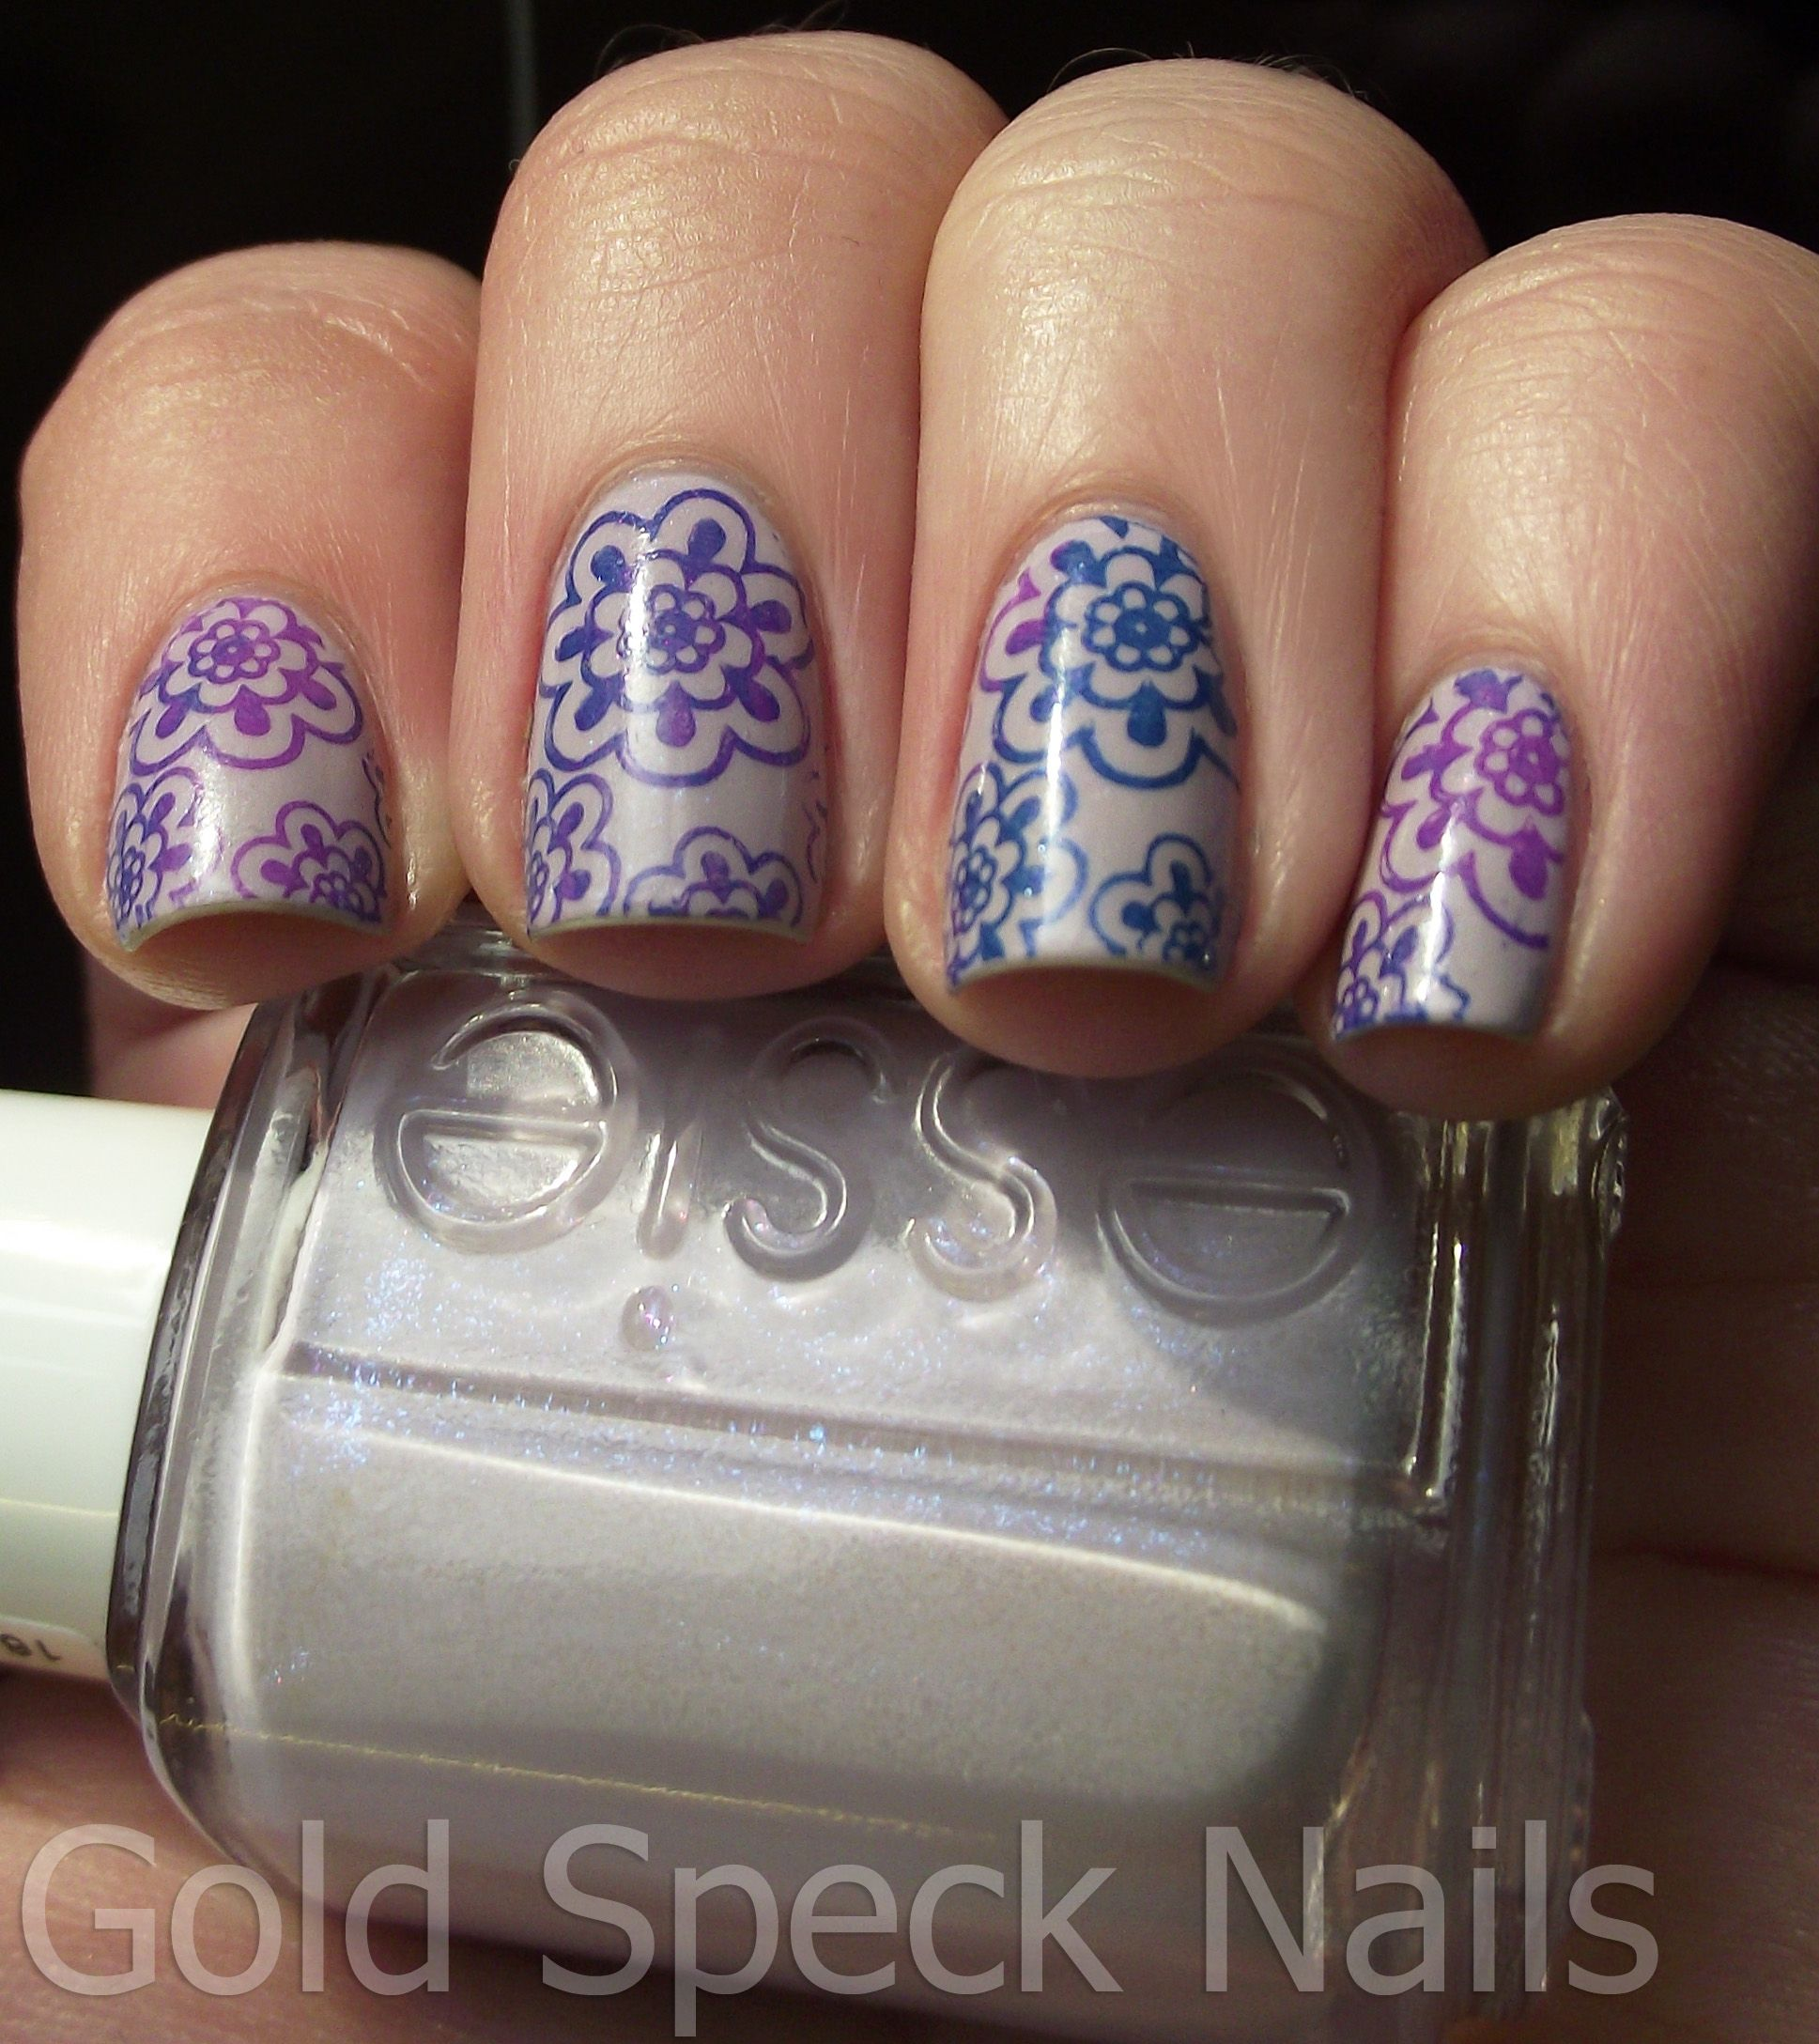 Base Coat: La Femme  Base Colour: Essie - To Buy Or Not To Buy  Stamping Colours: W7 - Blue Lagoon                                    Beauty UK - Jelly Bean  Image Plate: Bundle Monster BM 321  Top Coat: Rimmel 60 Seconds - Clear